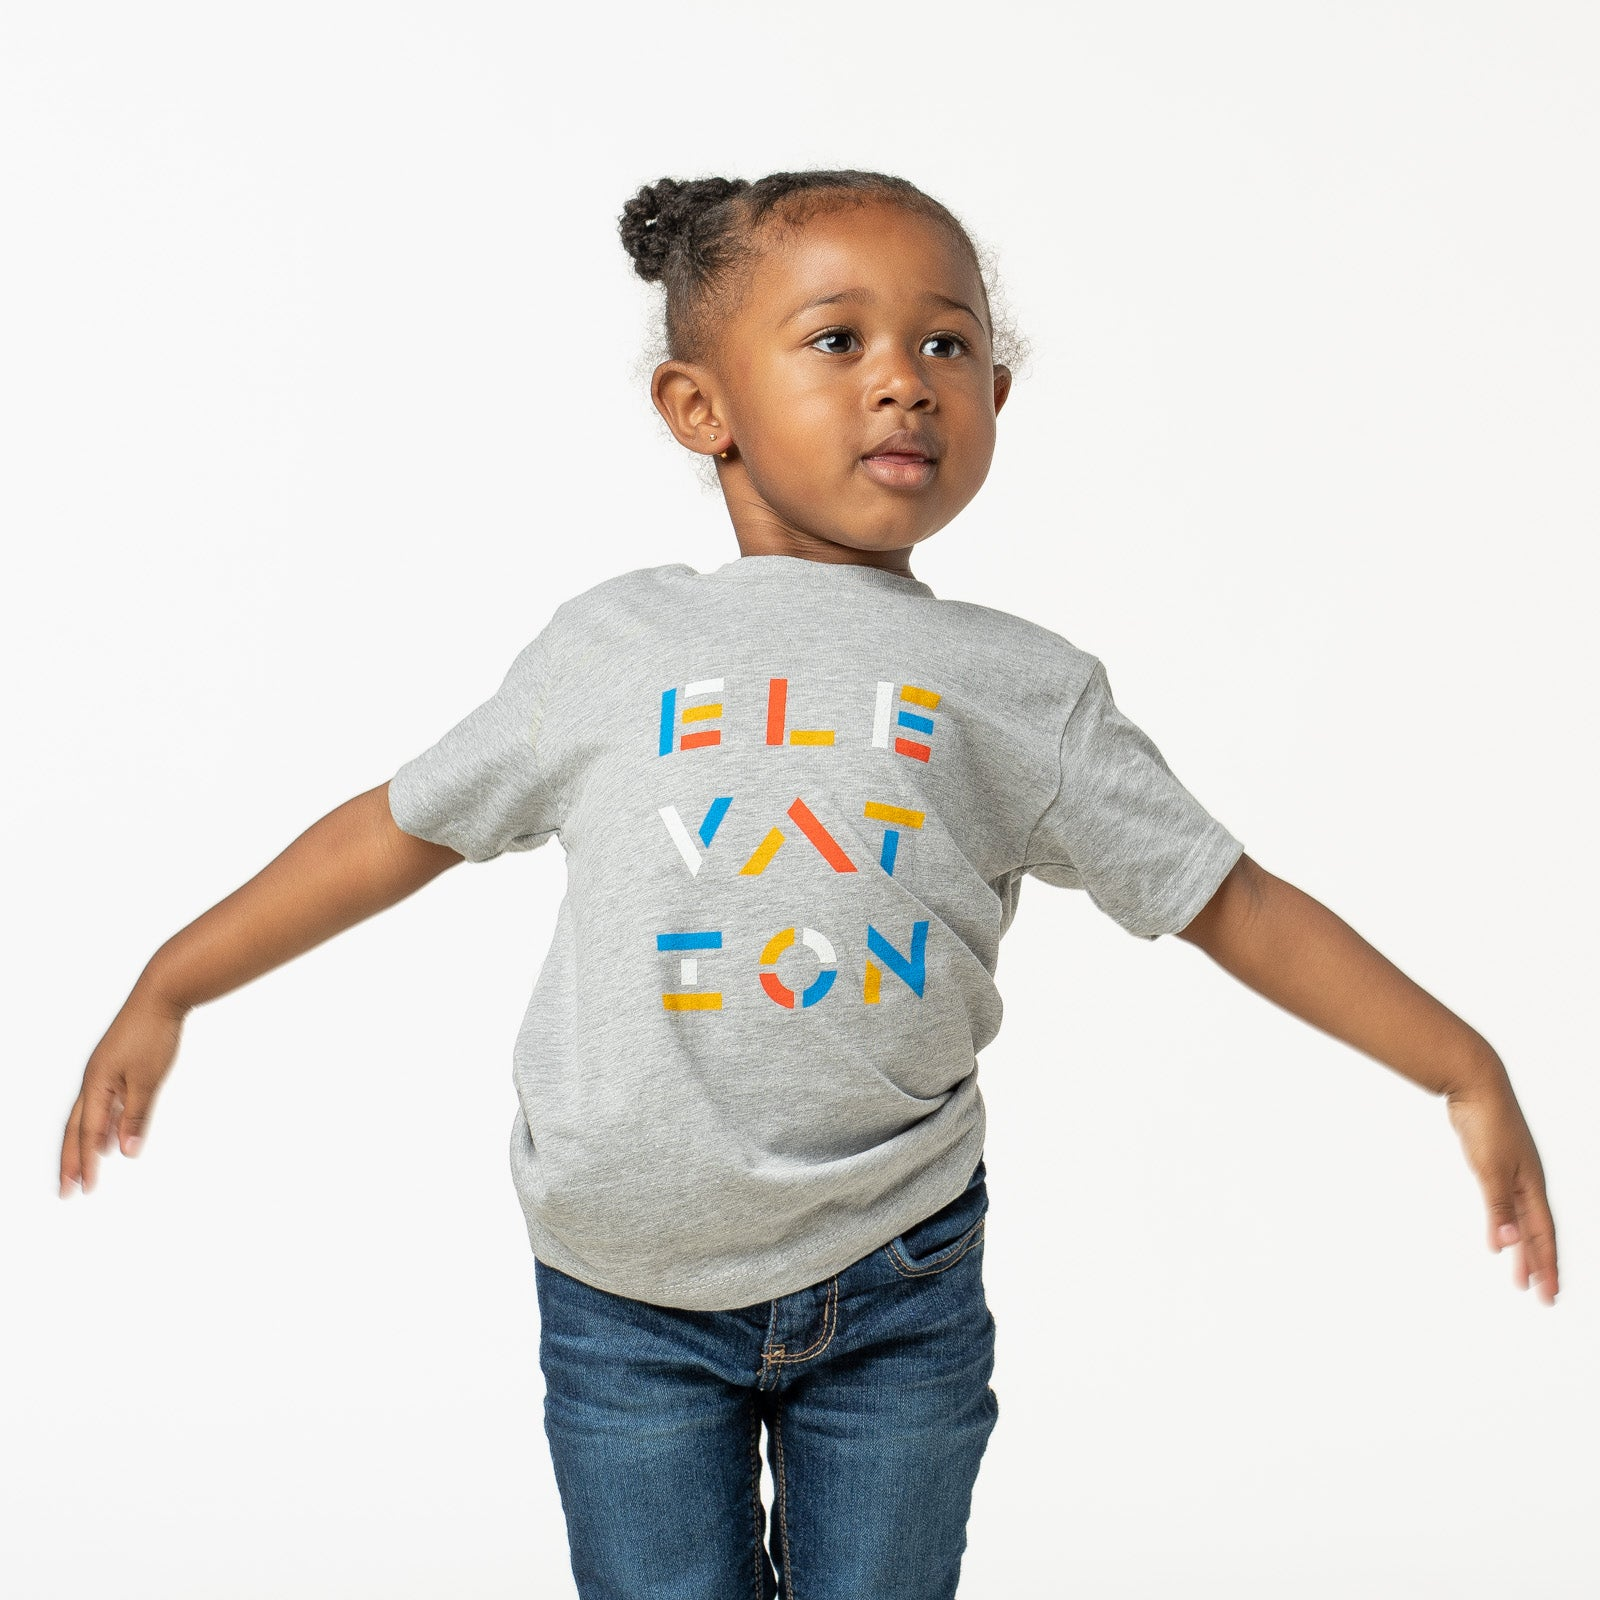 Kids 'Elevation' Grey Tee